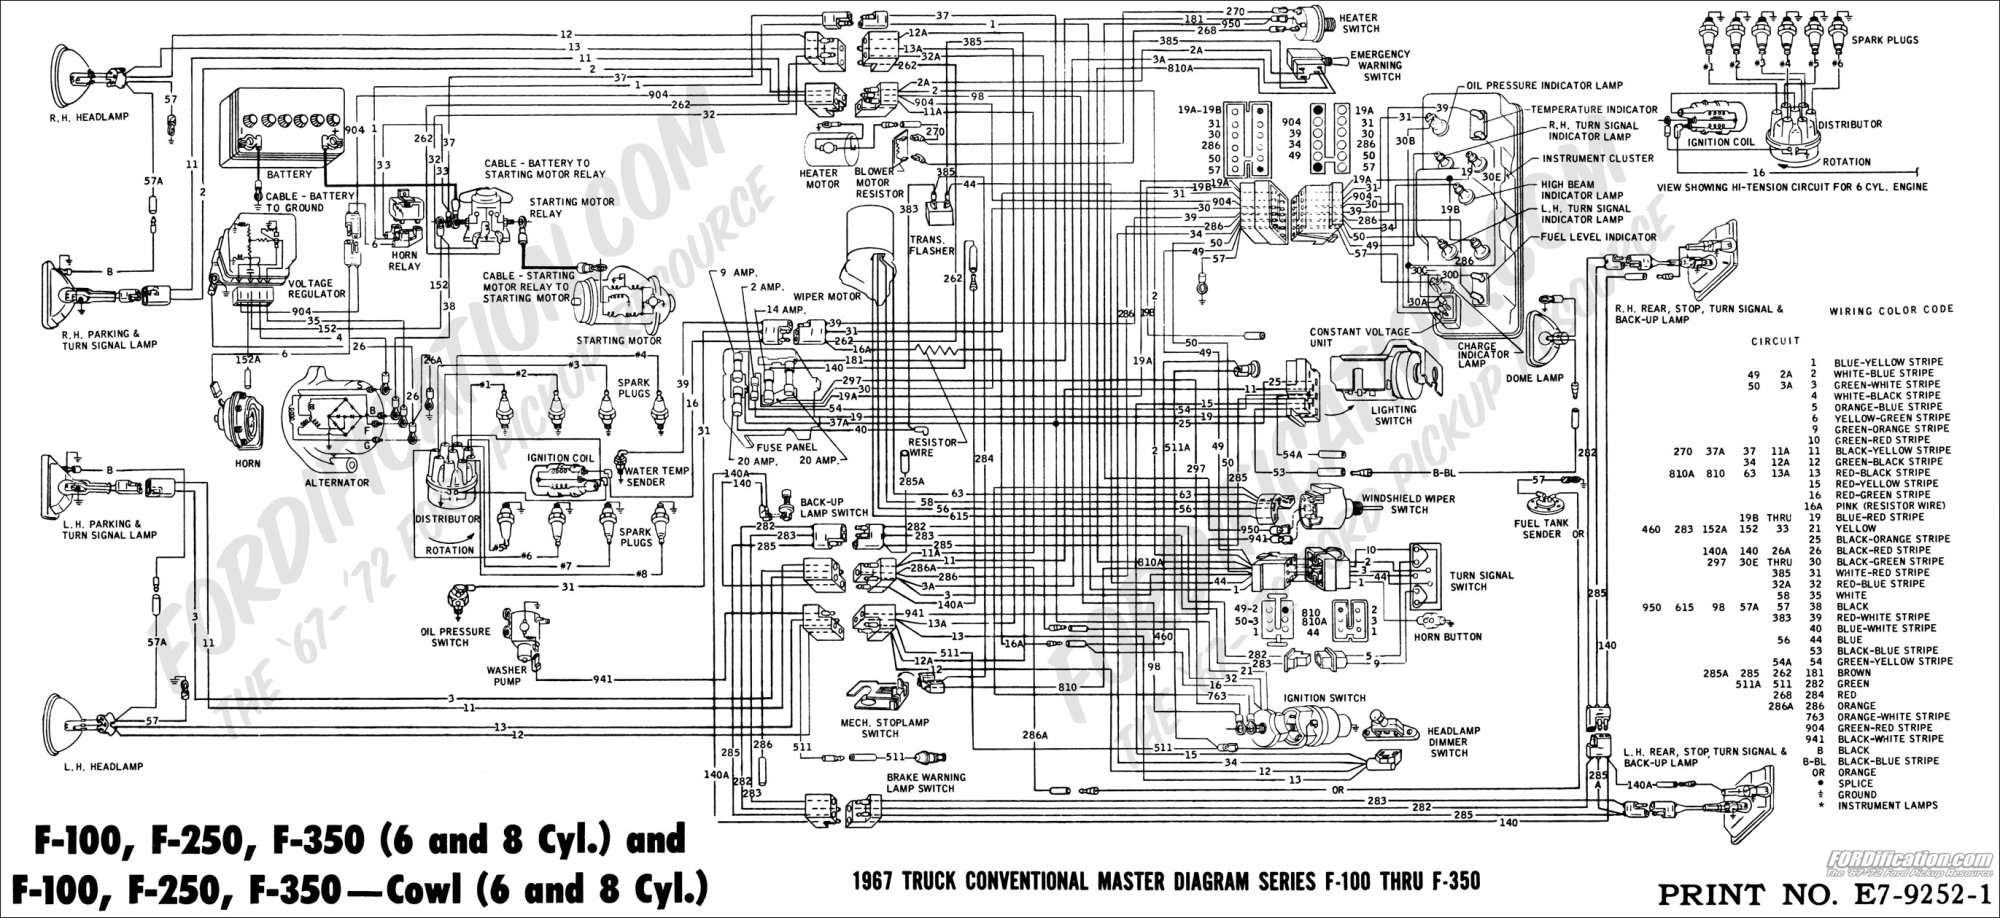 hight resolution of 1994 ford e350 wiring diagram wiring diagram name 1994 e350 wiring diagram wiring diagram mega 1994